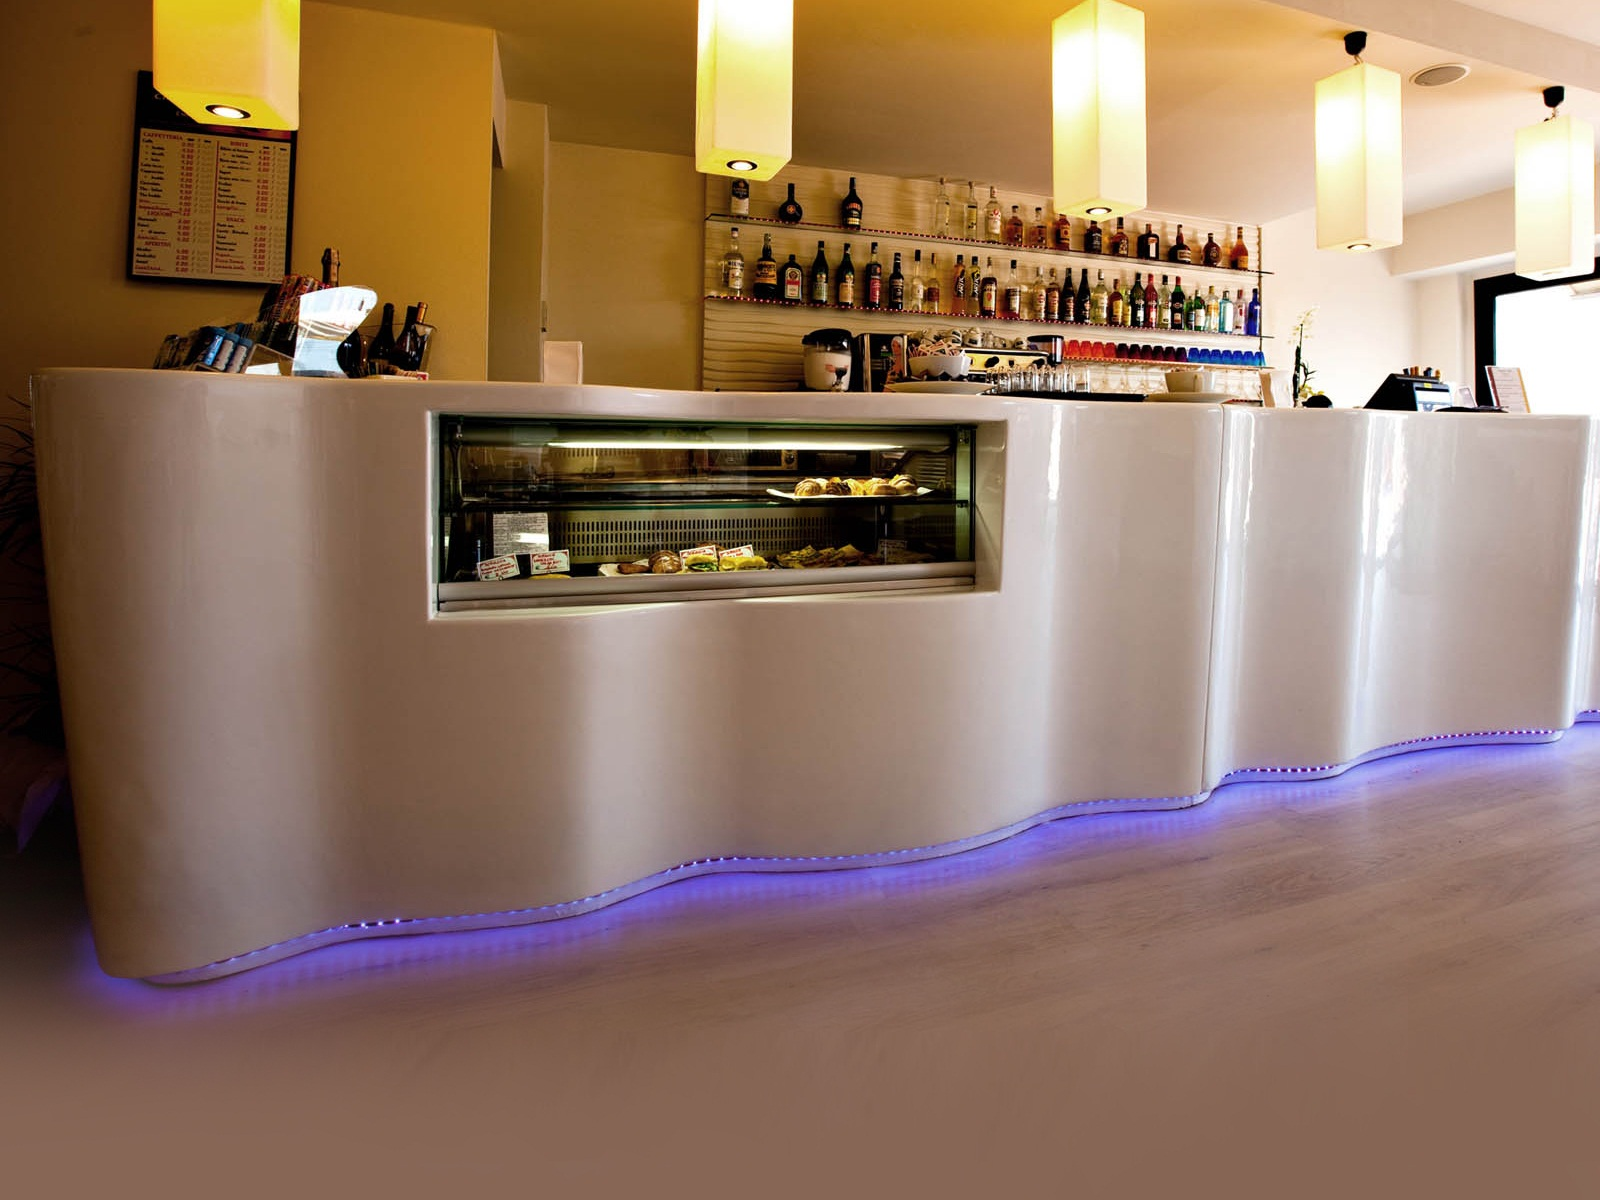 Ikea Bancone Bar. Gallery Of Storns Tavolo Bar With Ikea Bancone Bar ...